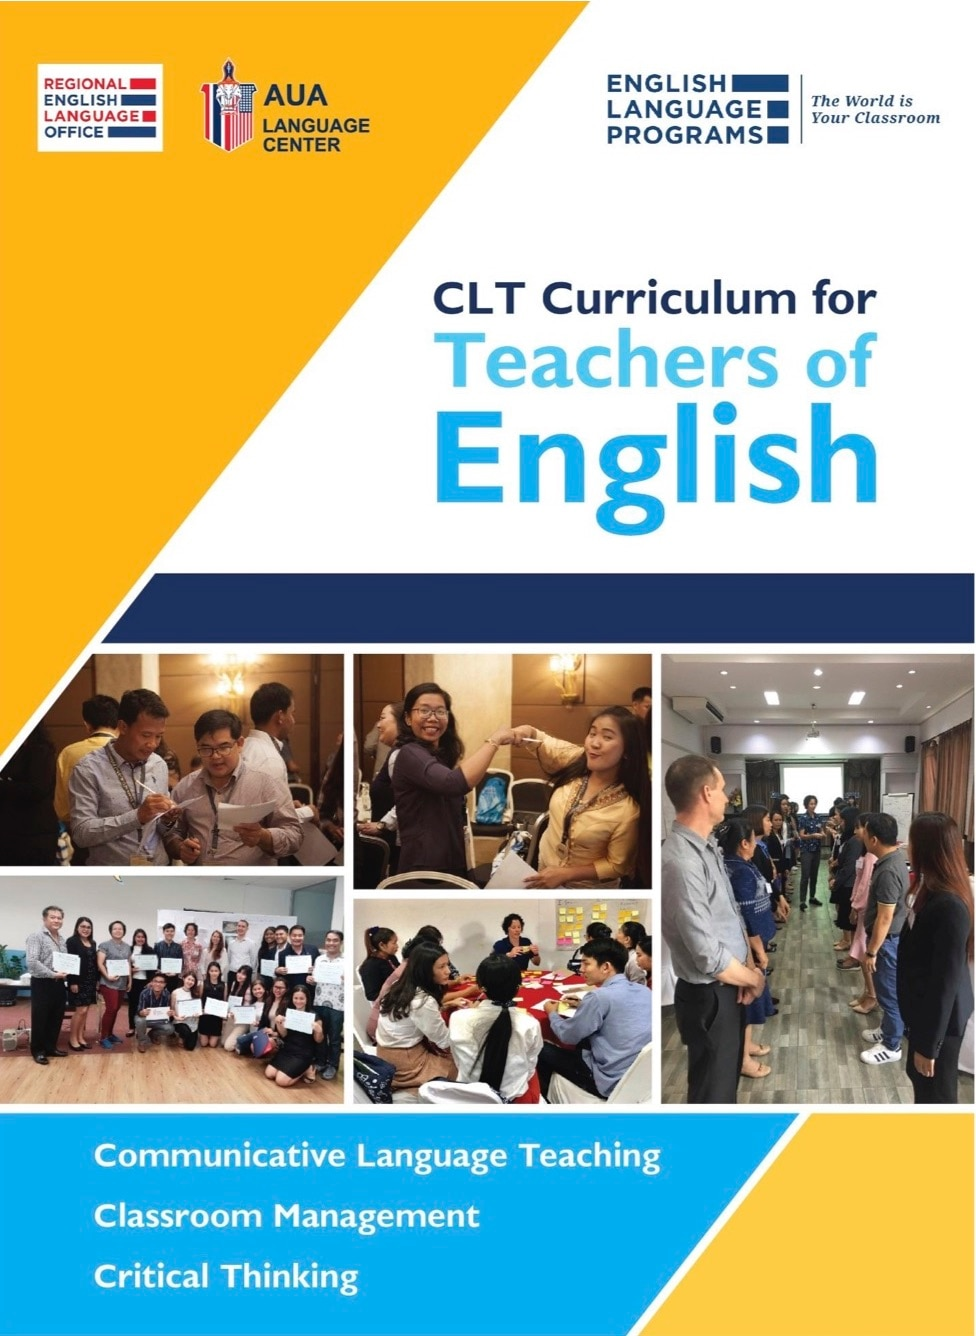 CLT Curriculum for Teachers of English